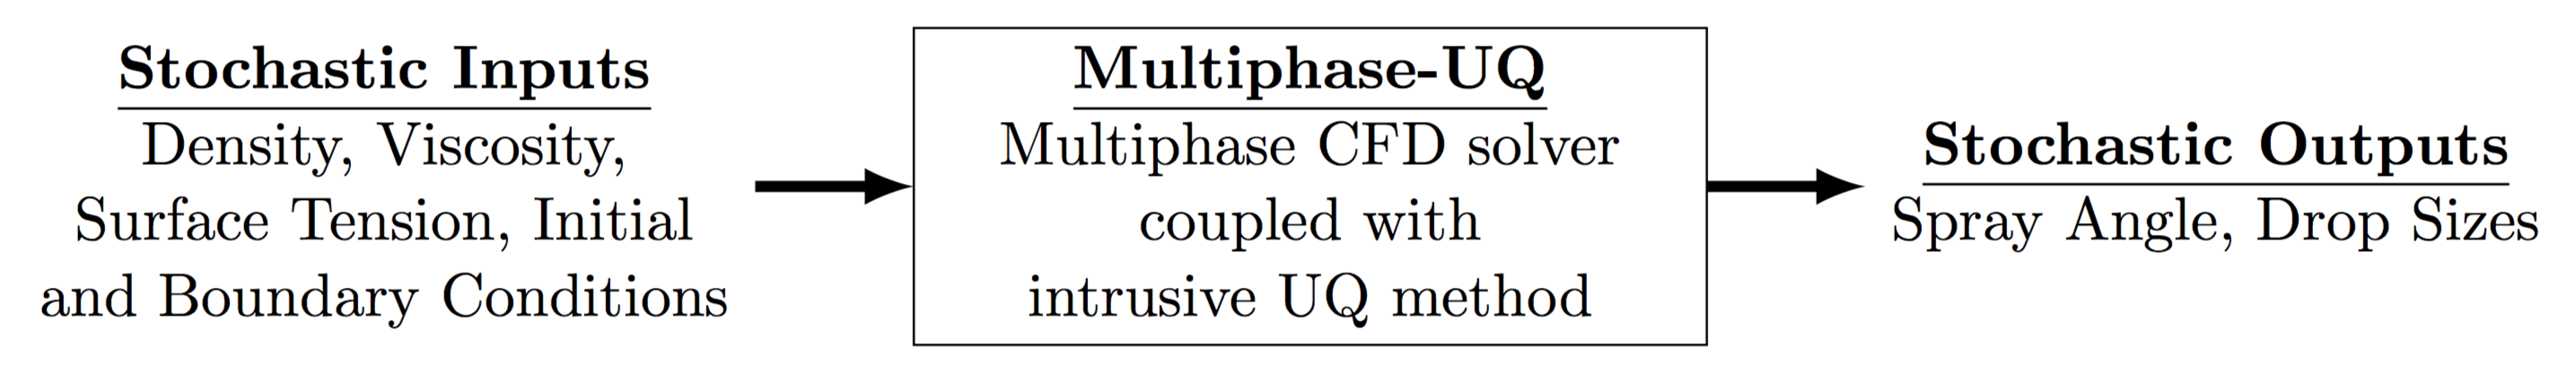 multiphase uncertainty quantificaation overview